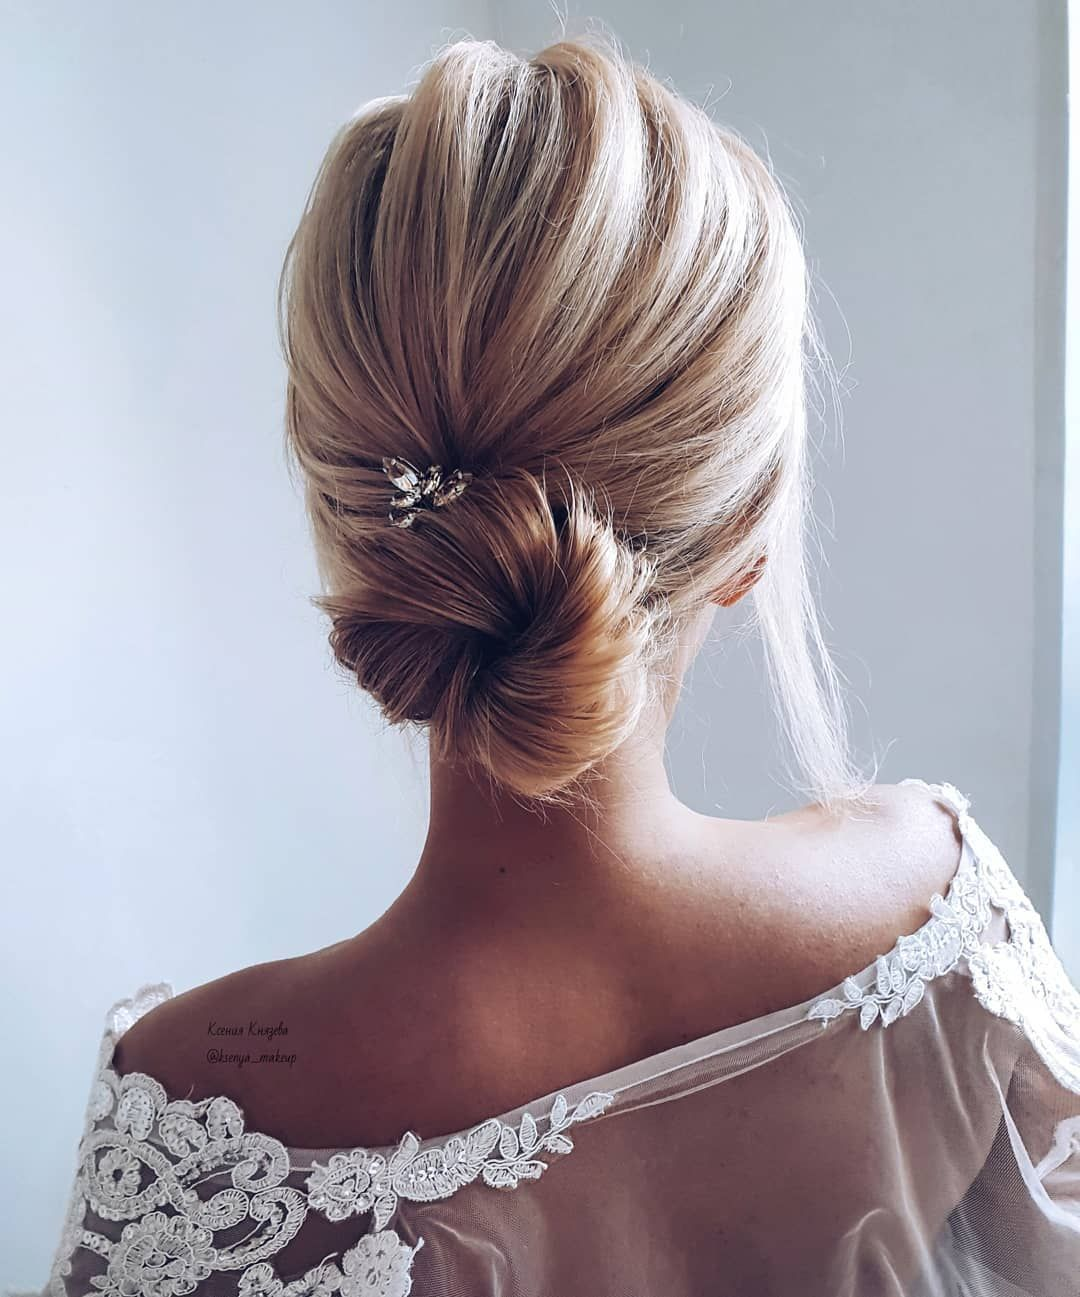 Effortlessly Chic Wedding Hairstyle Inspiration: Gorgeous & Super-Chic Hairstyle That's Breathtaking